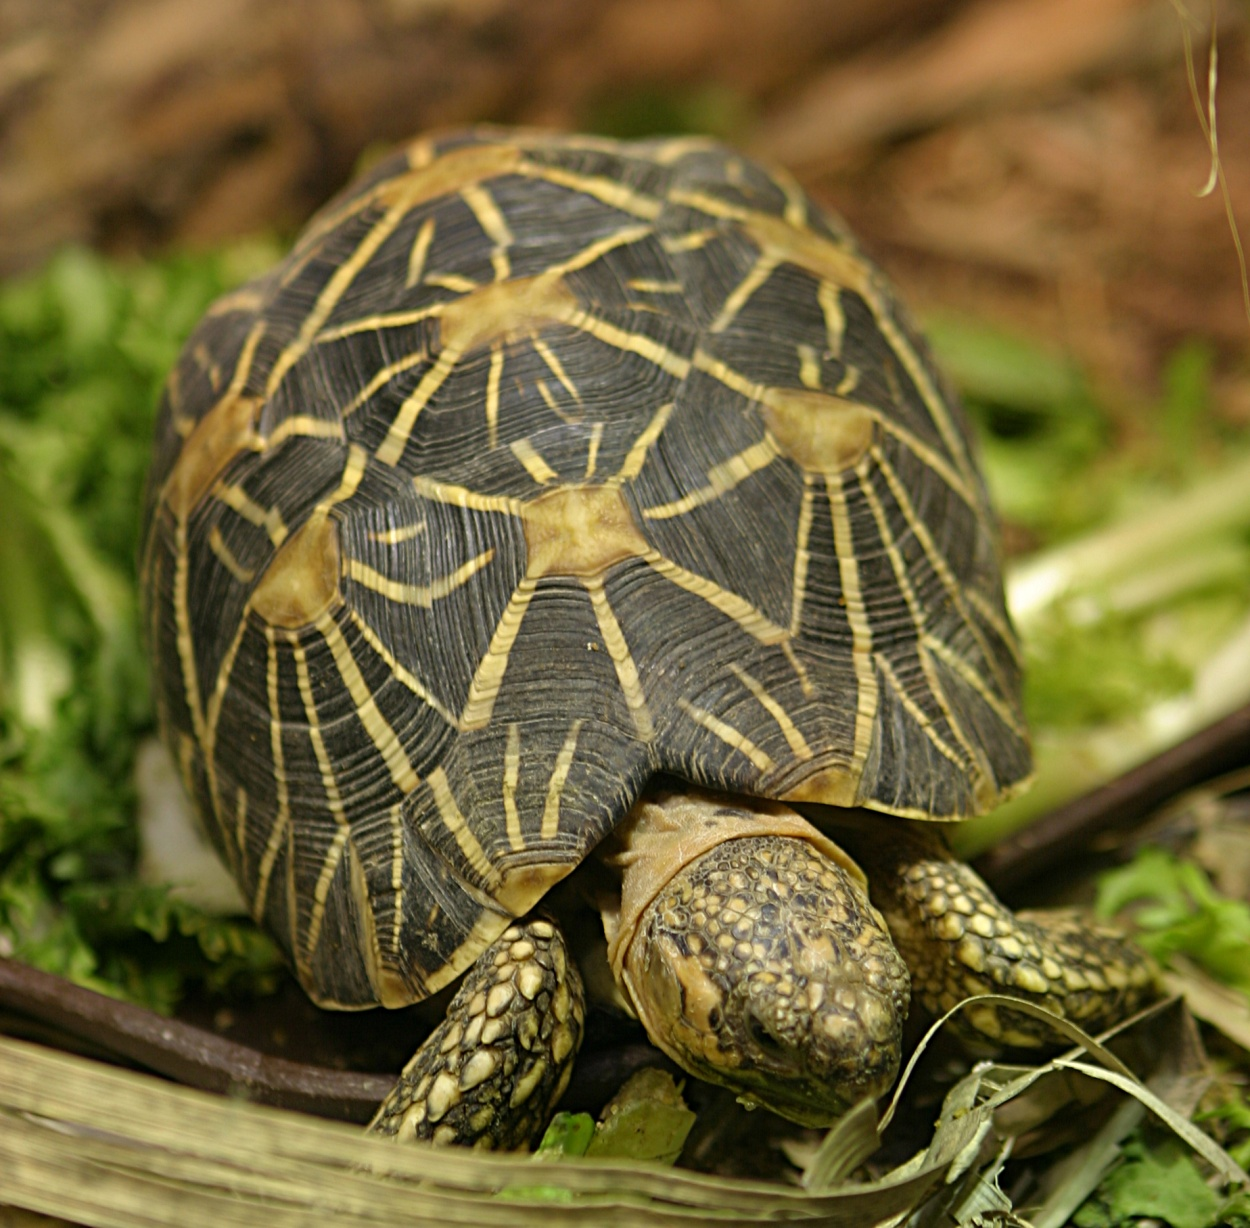 Reptile Research And Conservation Trust Of India: TURTLES